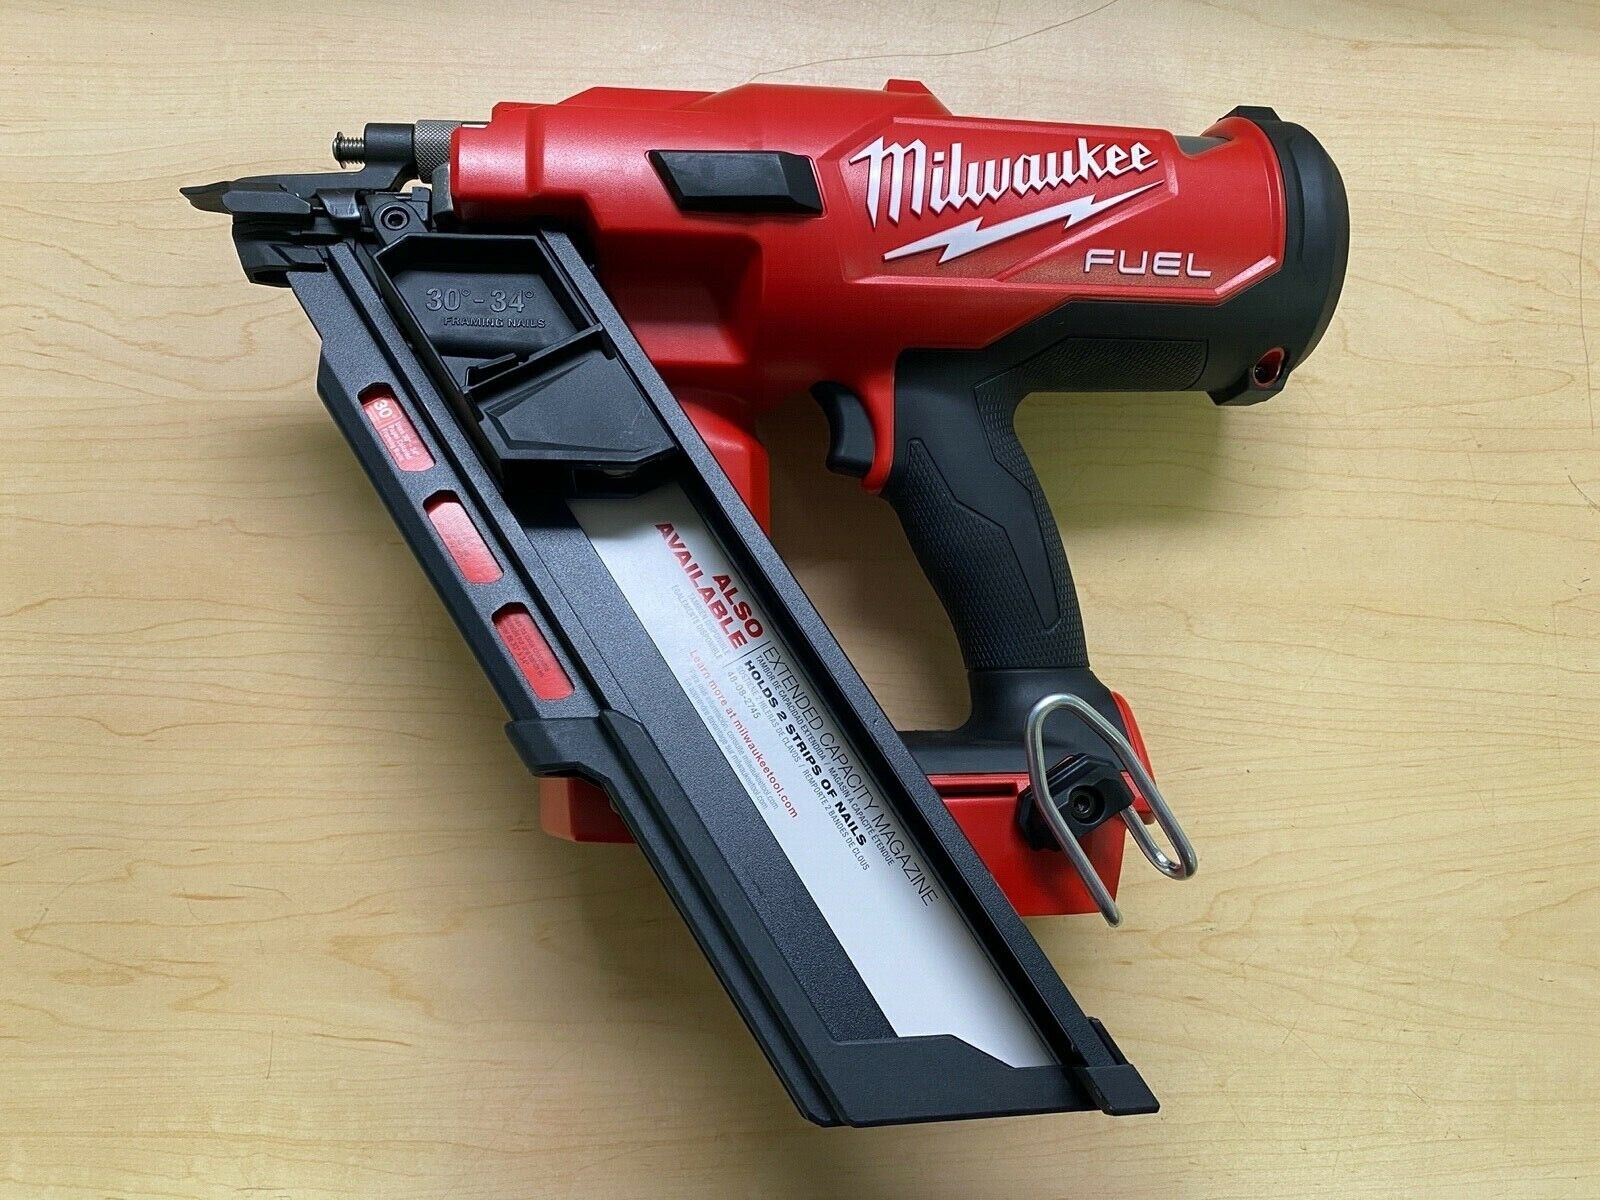 Milwaukee 2745-20 M18 FUEL 30-Degree Framing Nailer (Tool Only). Buy it now for 329.99